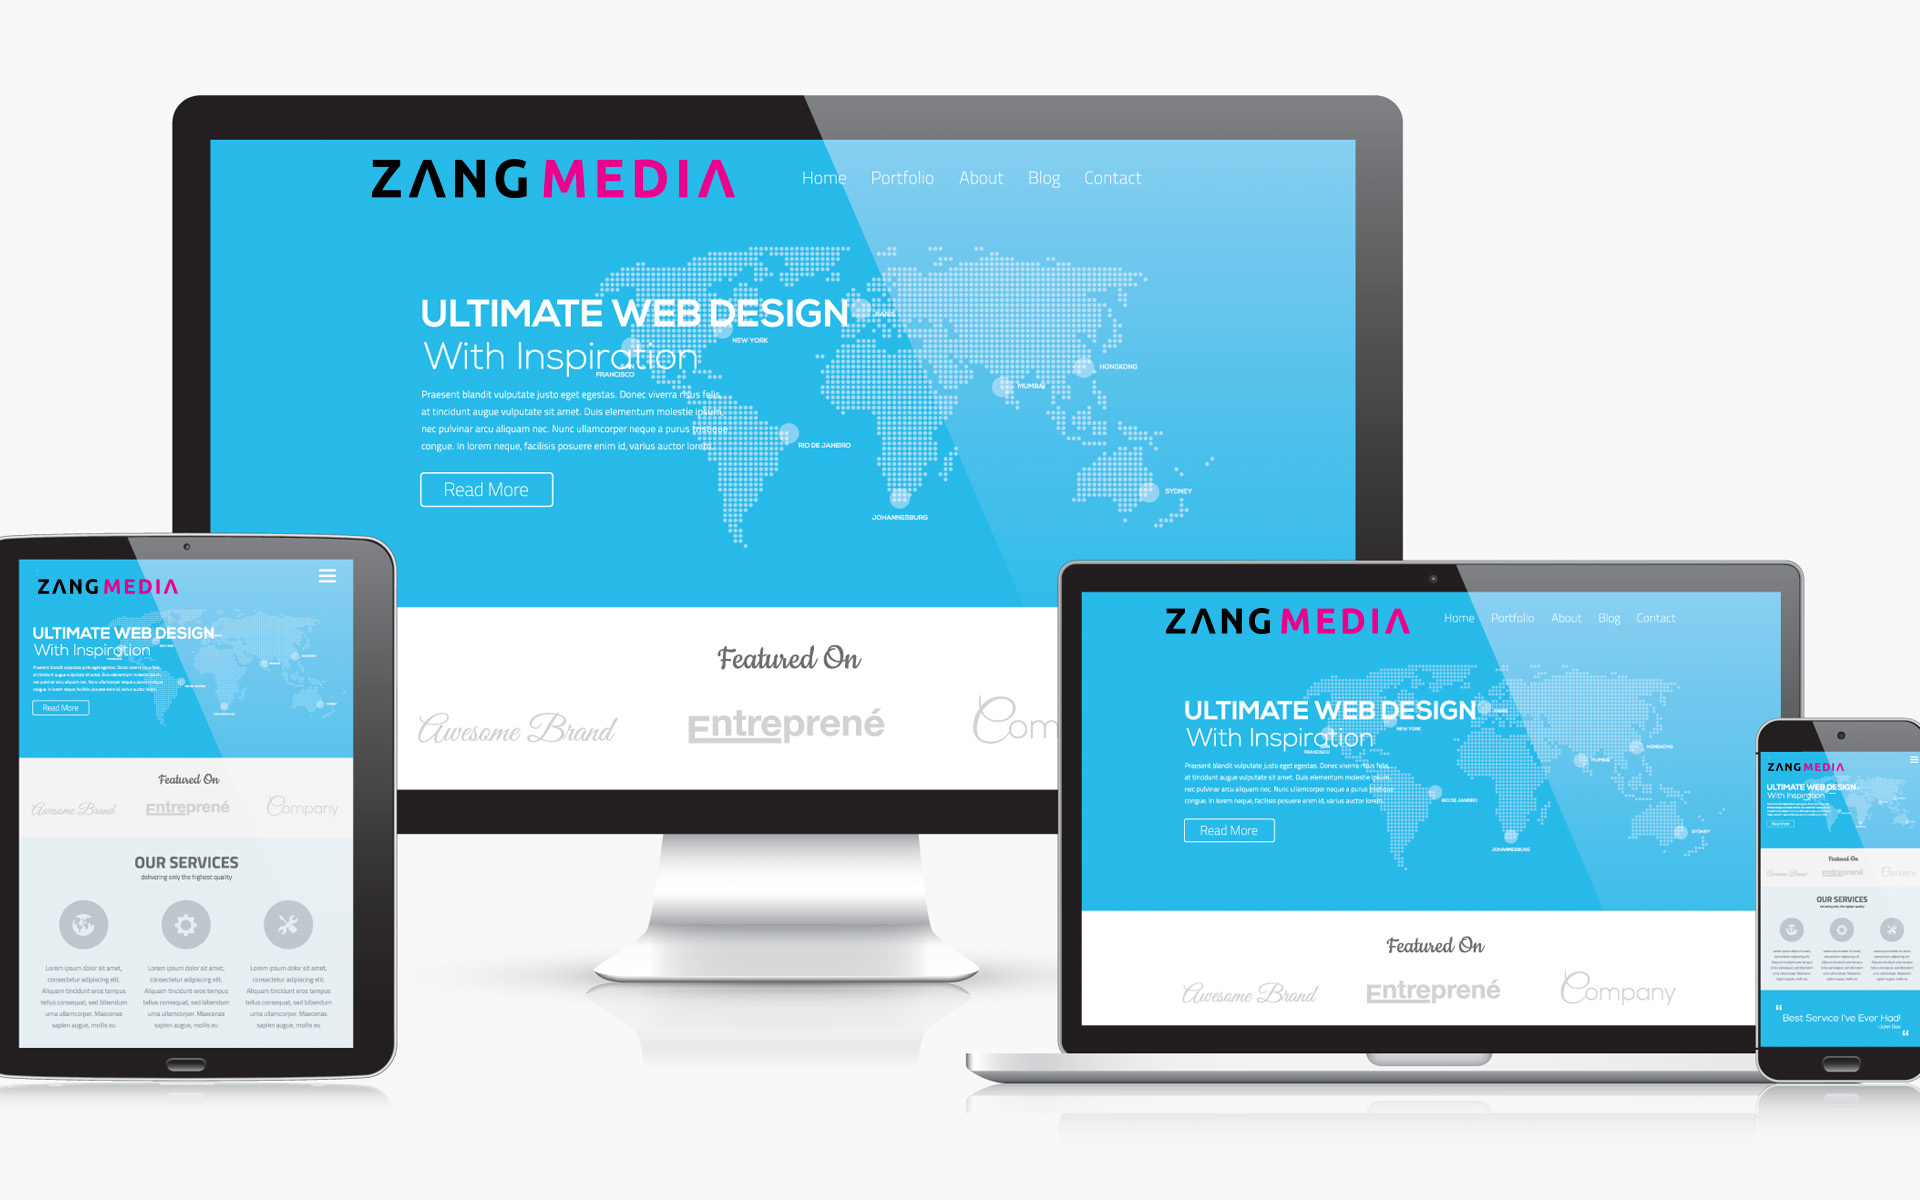 ZANG Media web design turn traffic into dollars